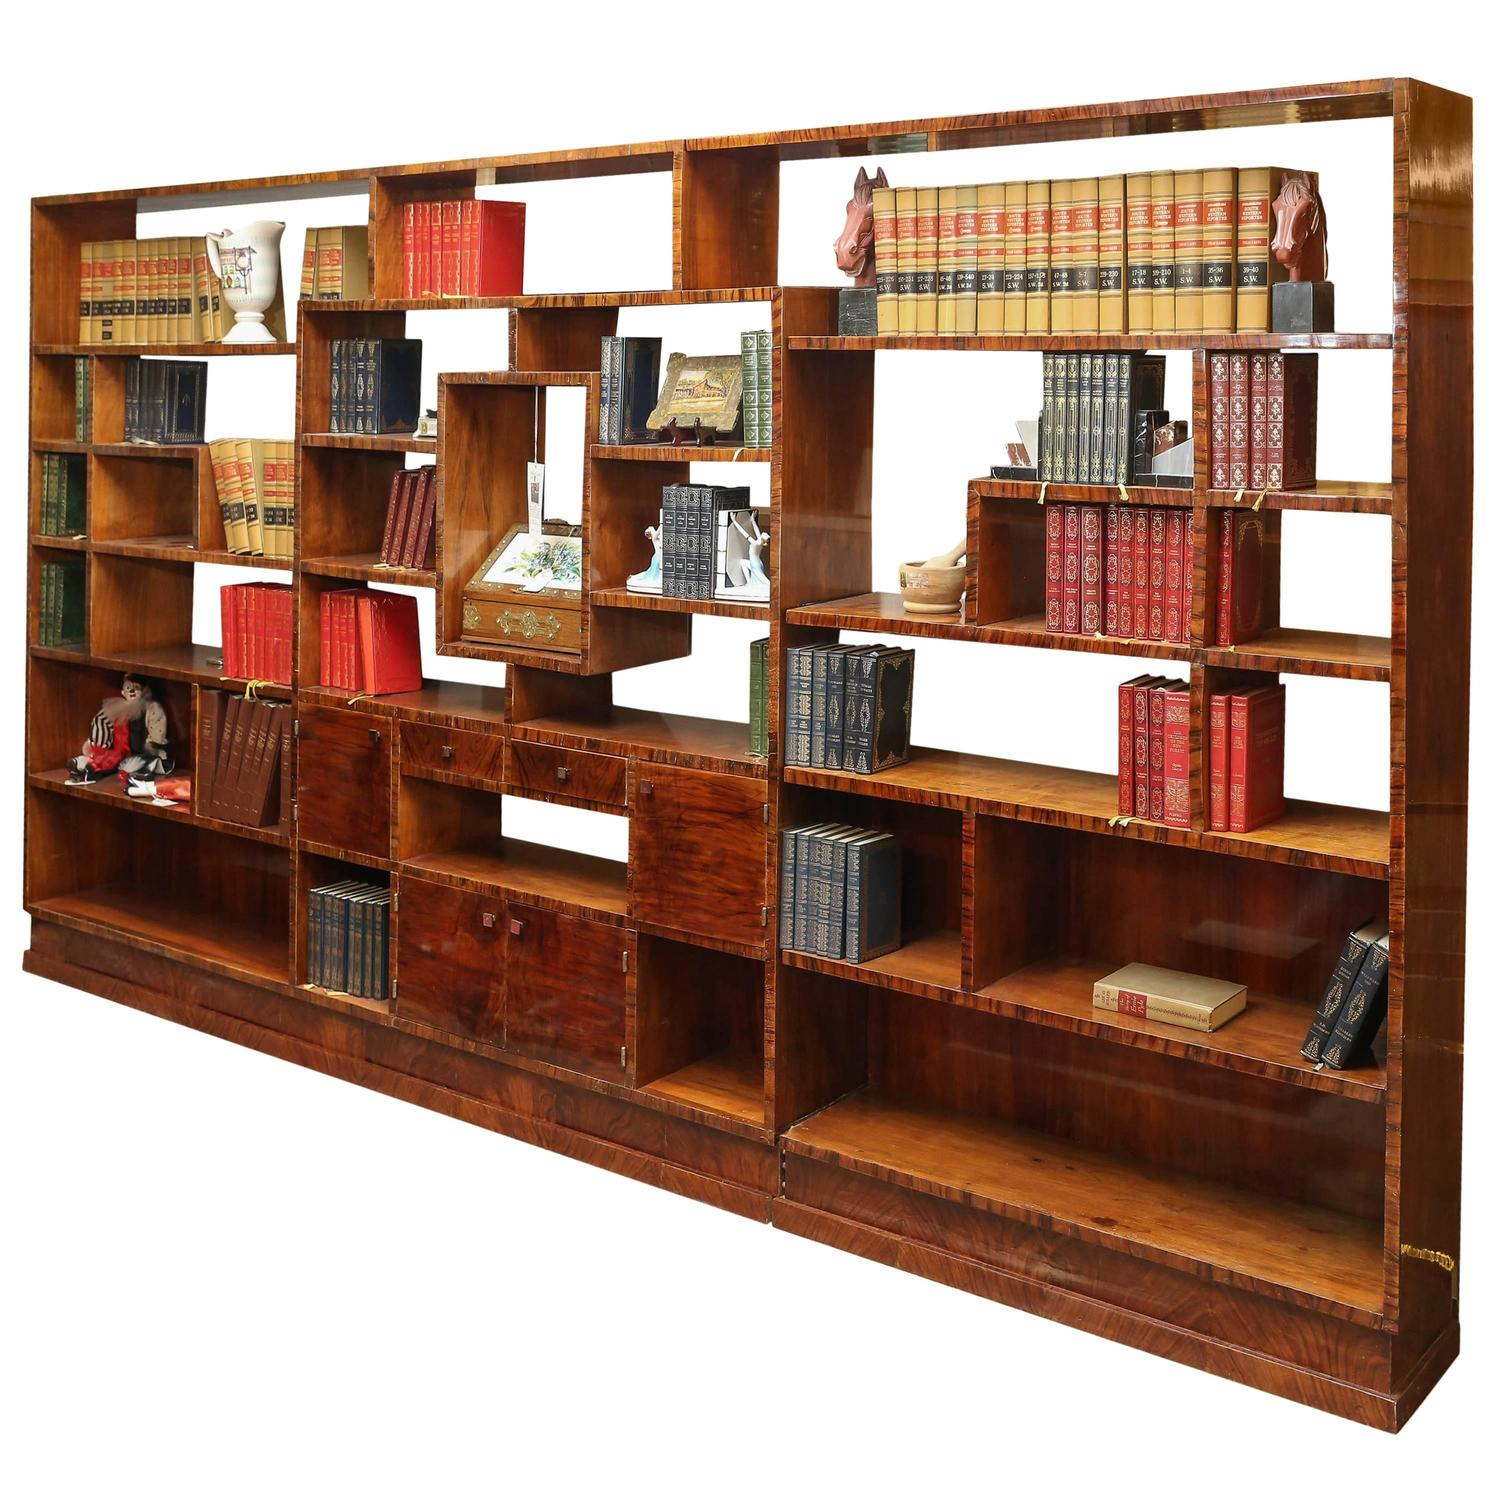 Art deco bookcase room divider at 1stdibs - Bookshelves as room divider ...